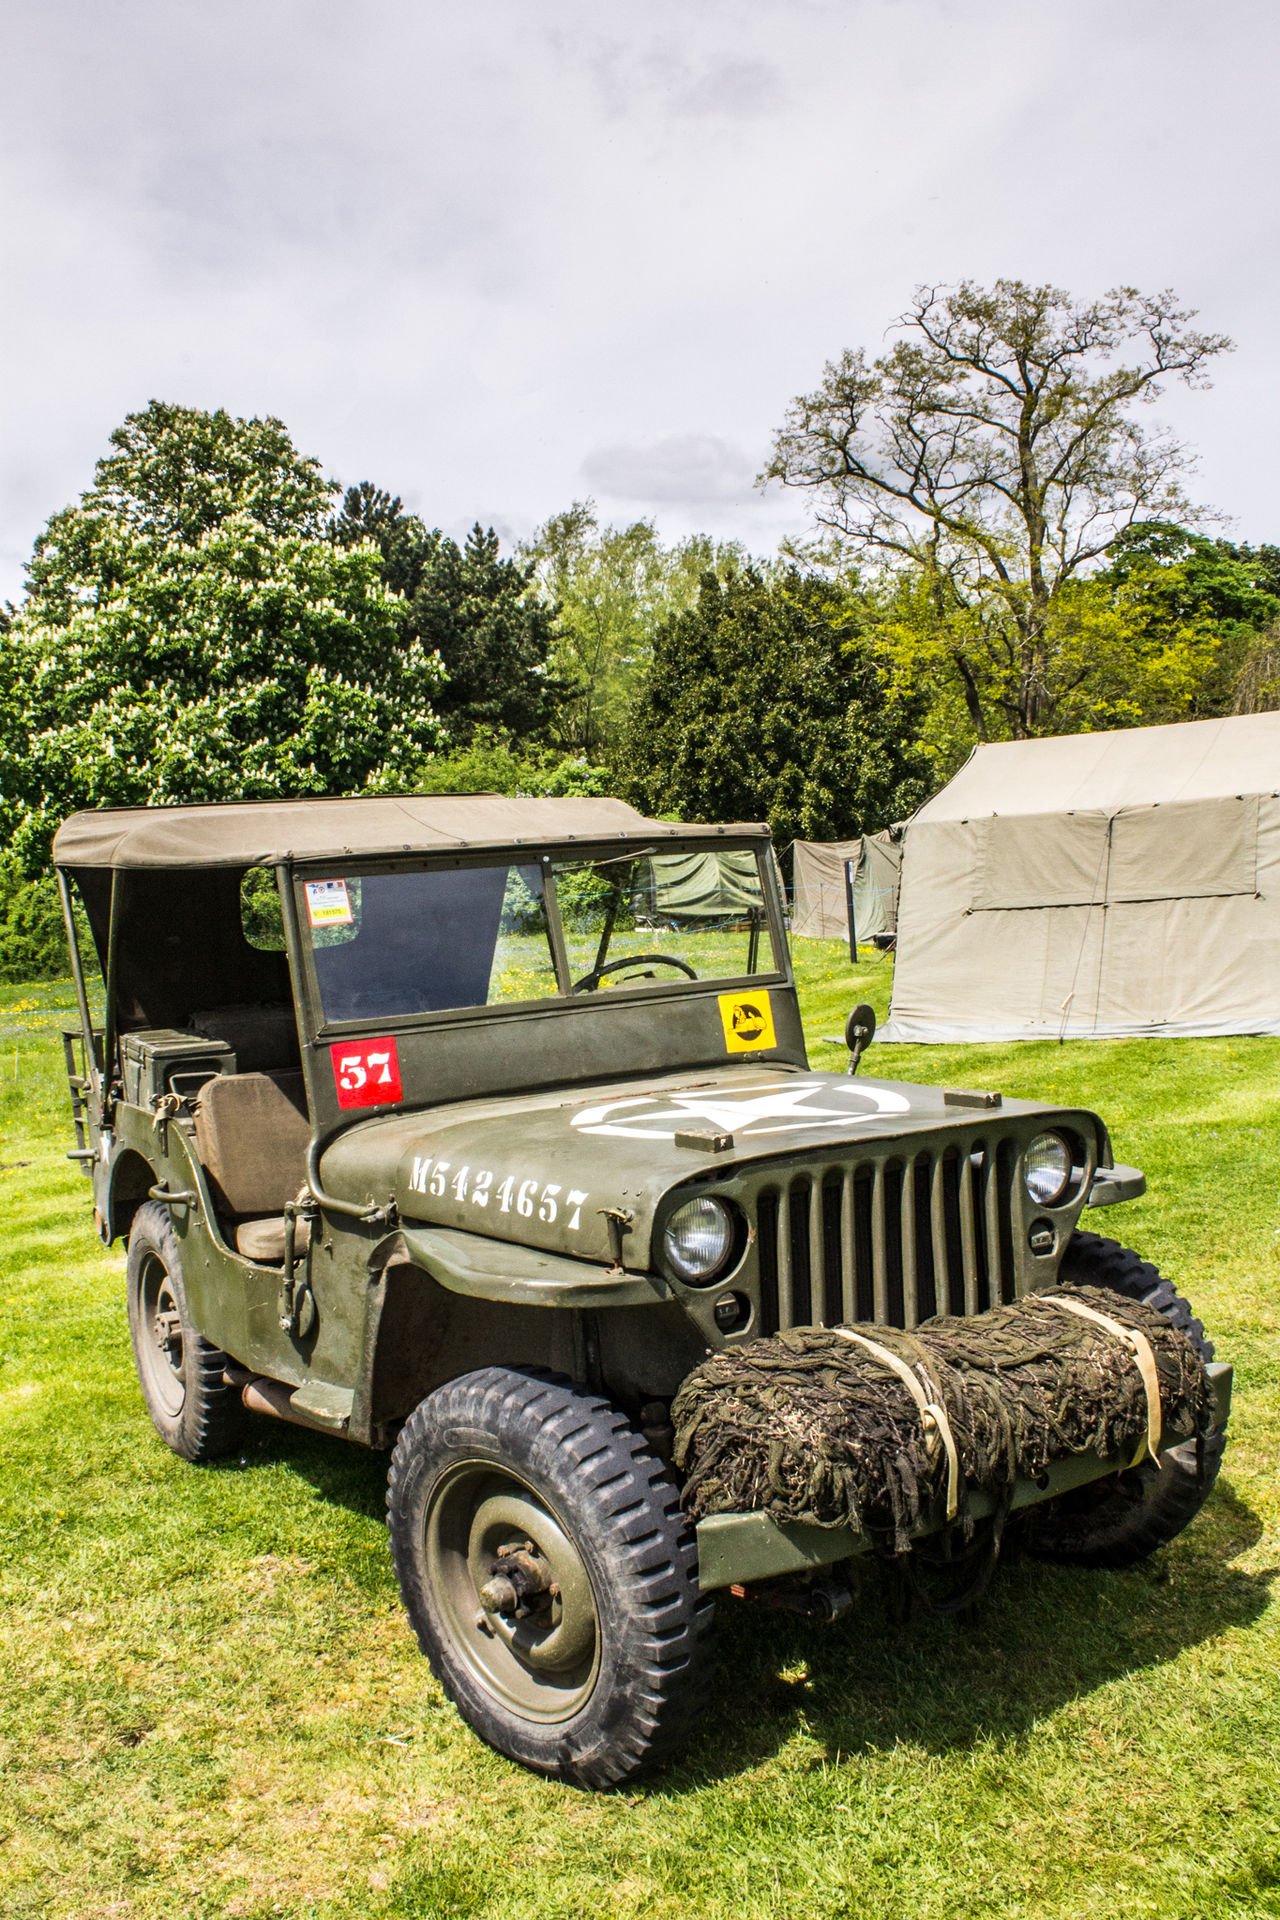 Transportation Tree Land Vehicle Outdoors Day No People Grass Sky Old-fashioned Cressing Temple Temple At War Defence Army War Military Transportation Army Vehicles Jeep Armoured Vehicles Netting